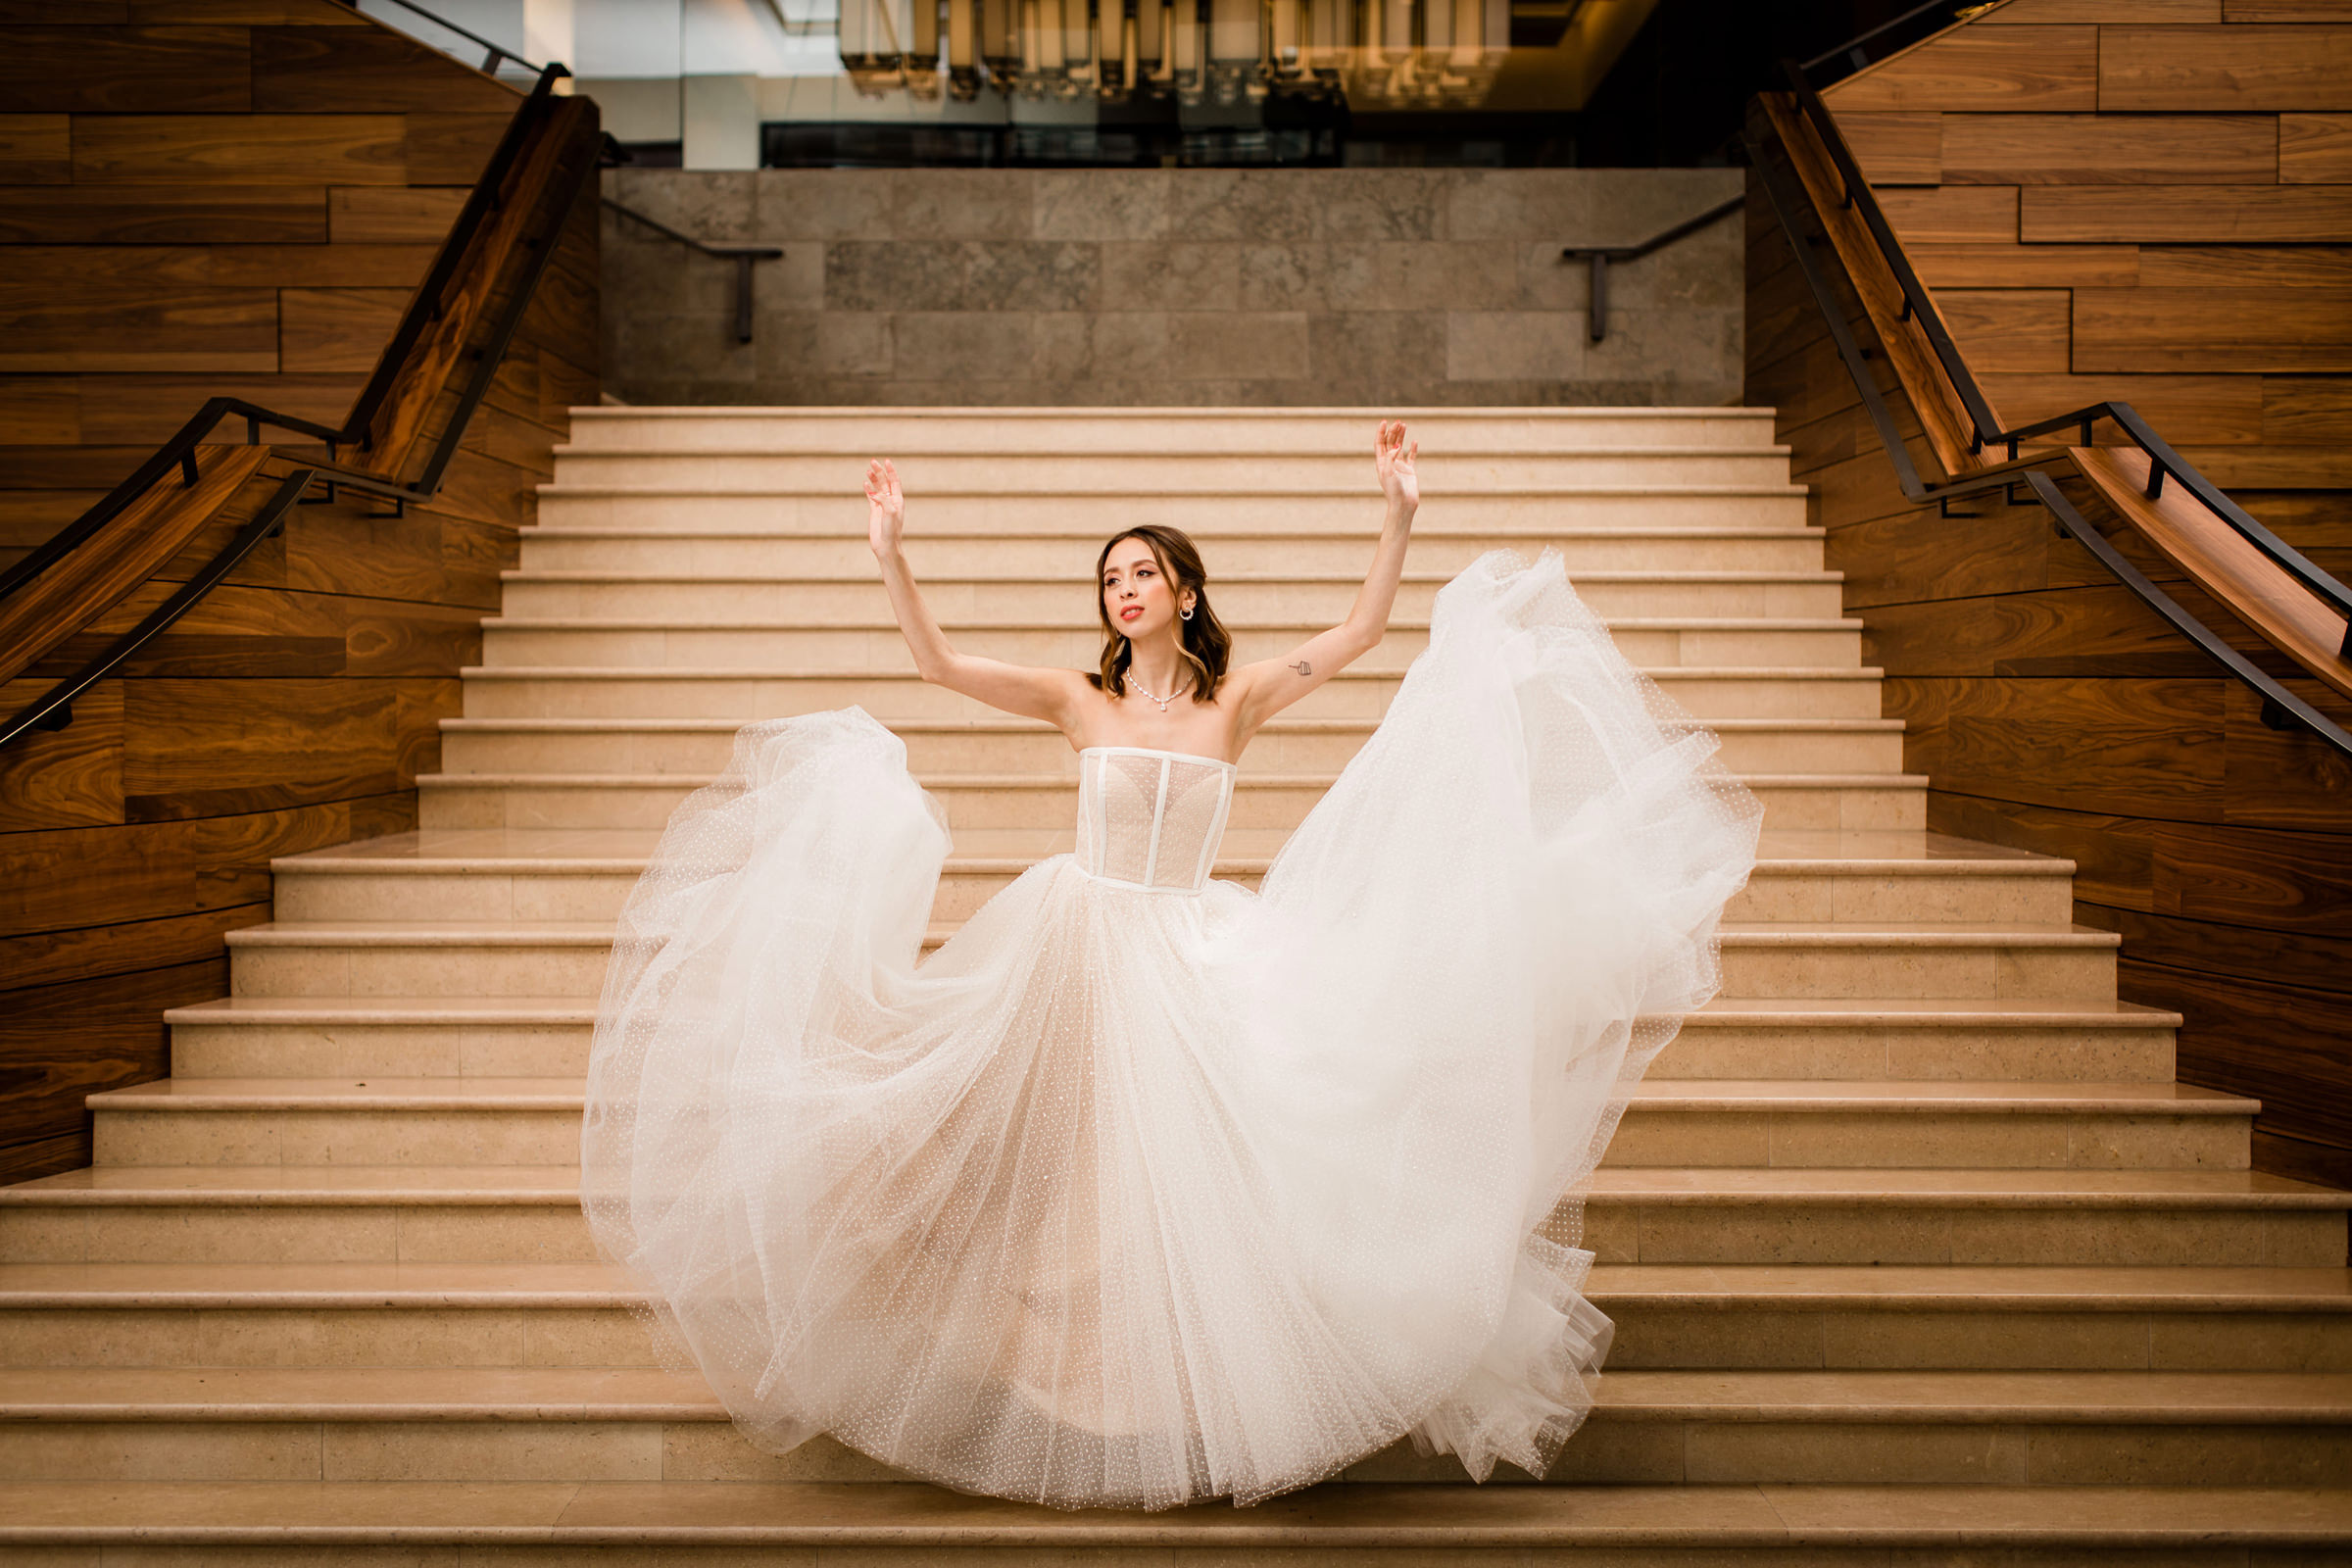 Arms in the air bride on staircase showing off gown - photo by Into Dust Photography